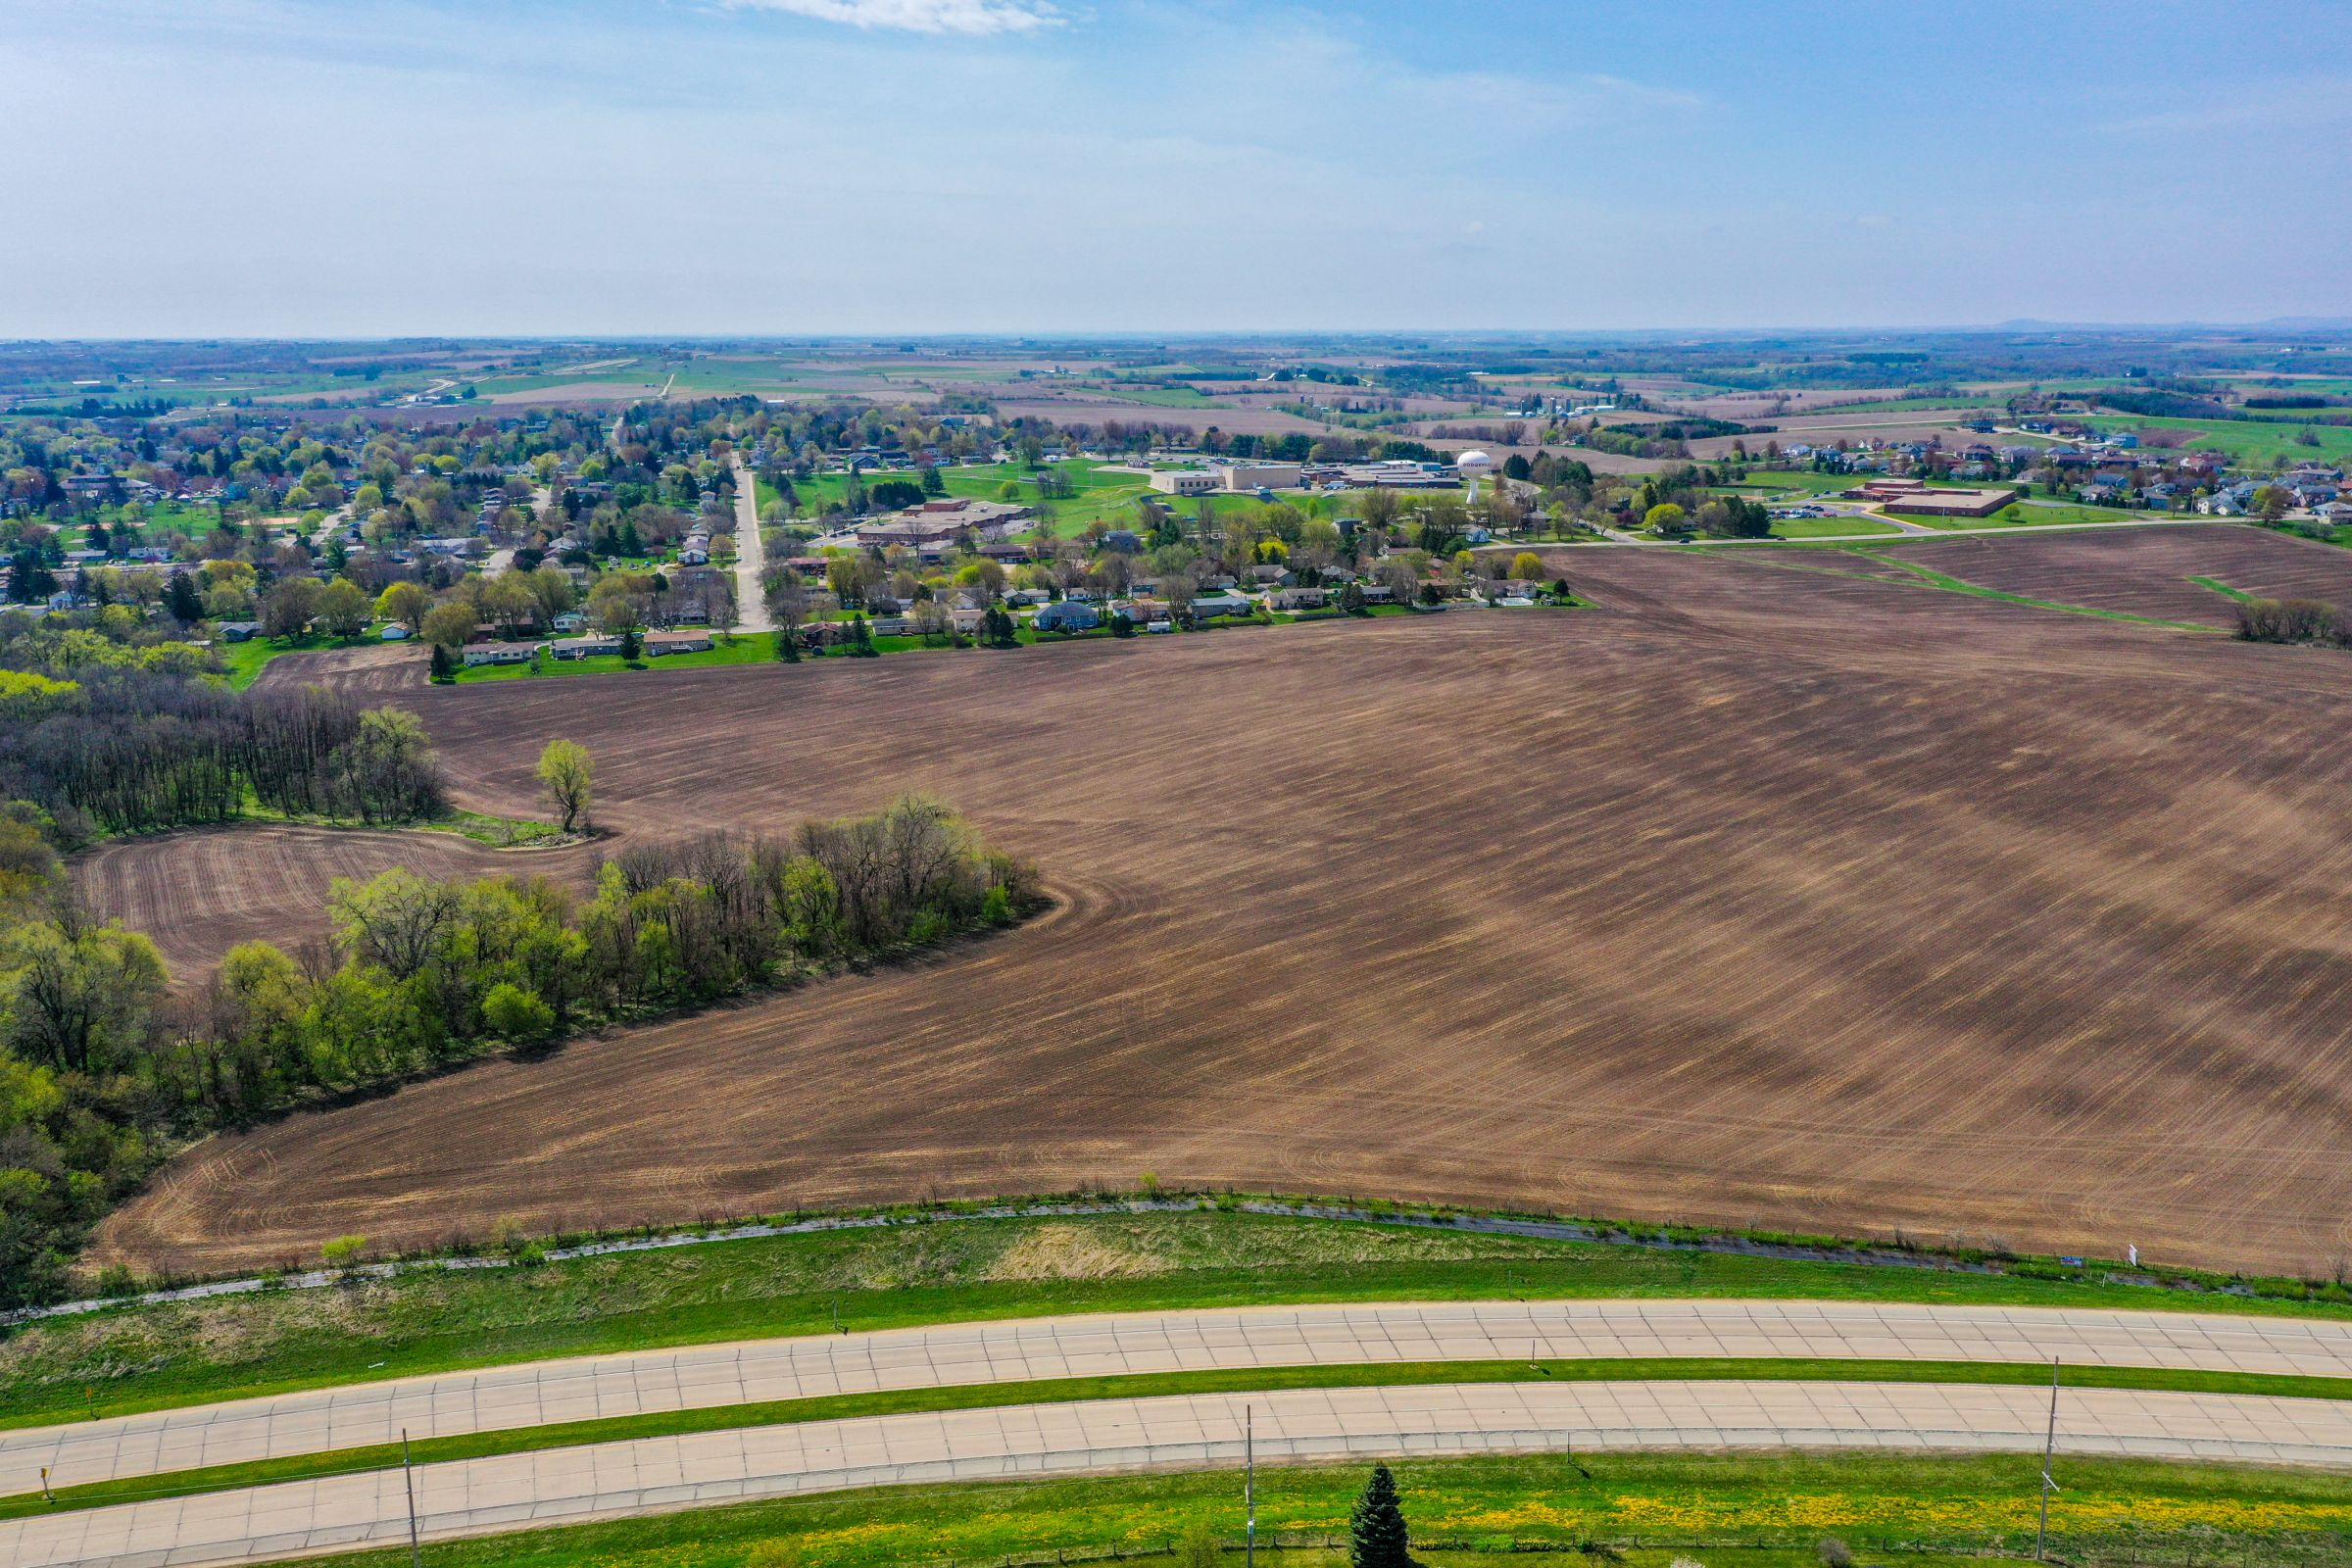 development-land-commercial-iowa-county-wisconsin-152-acres-listing-number-15474-0-2021-05-18-164820.jpg